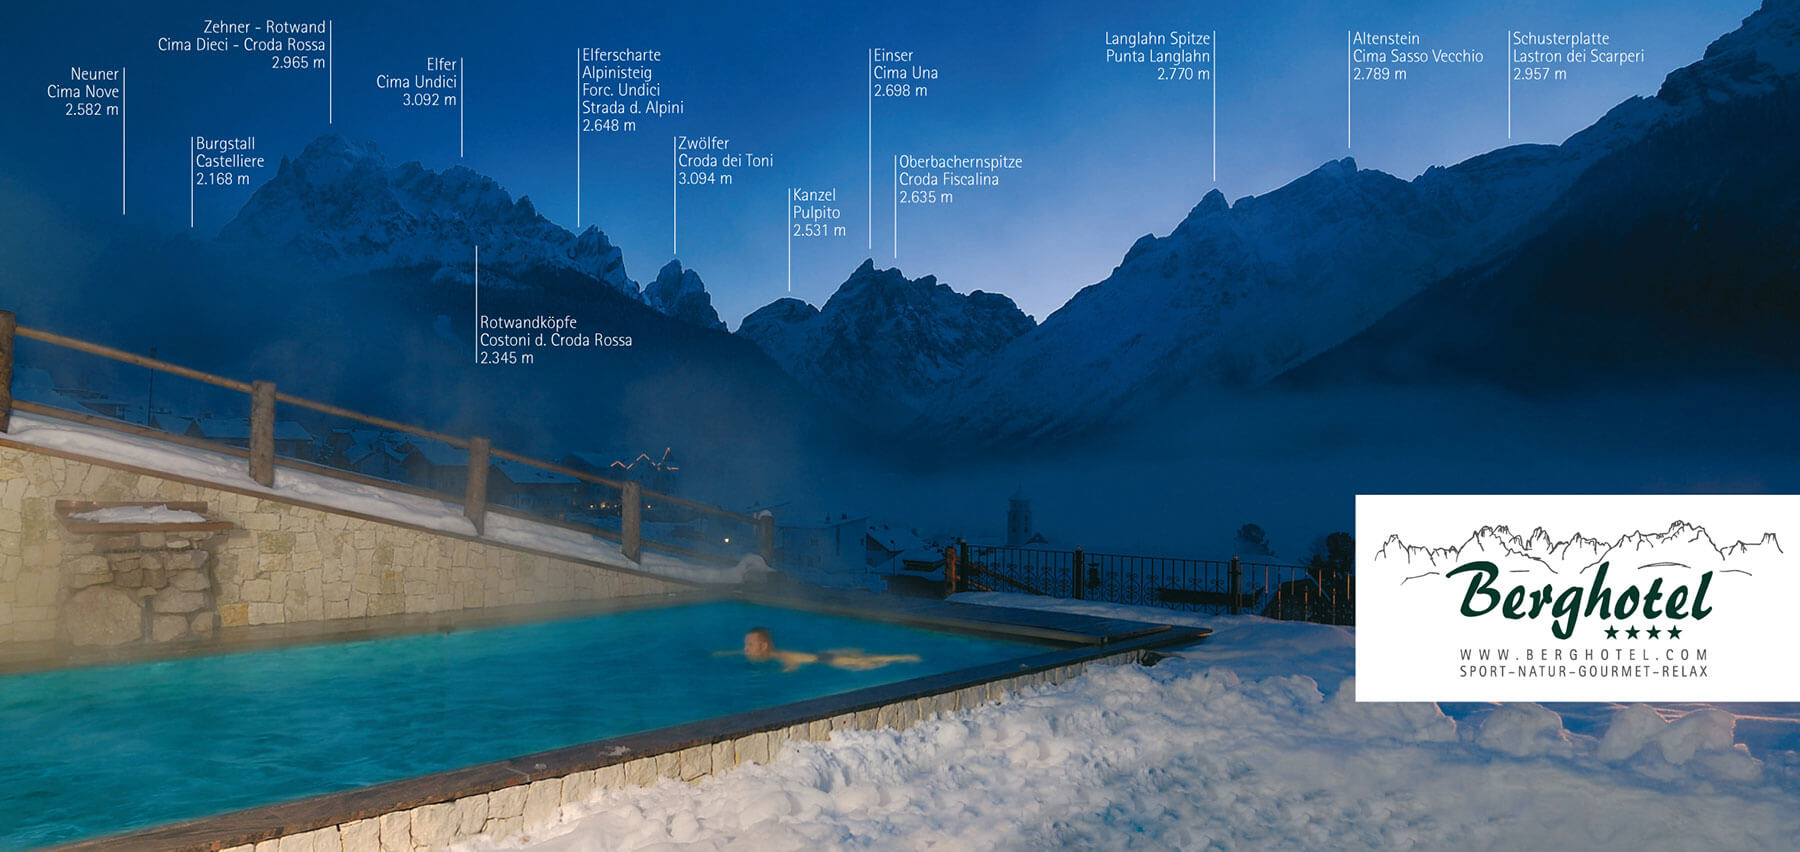 Swimming Pool In The Dolomites Italy